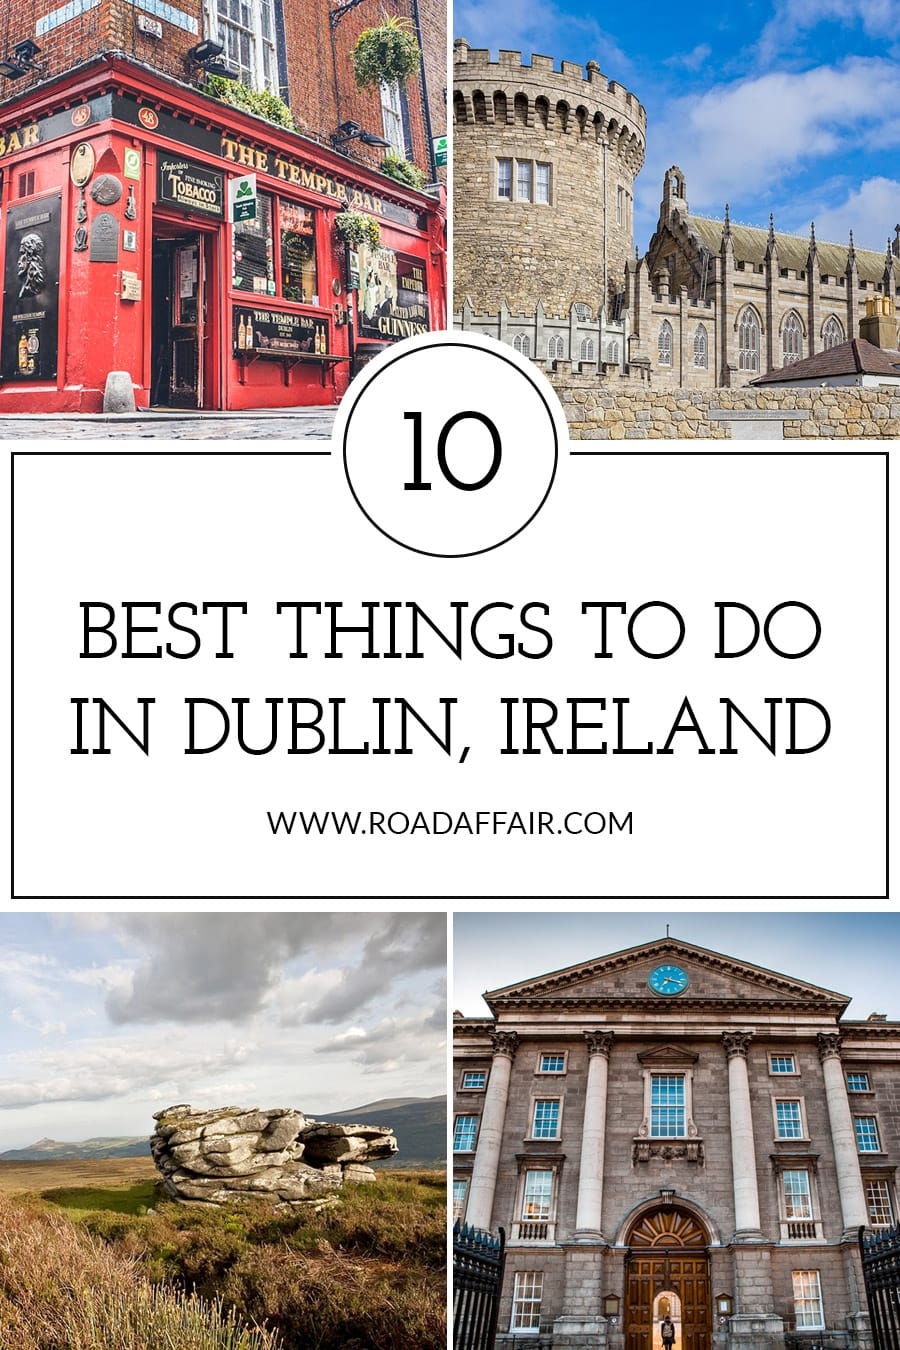 Best Things to Do in Dublin Ireland